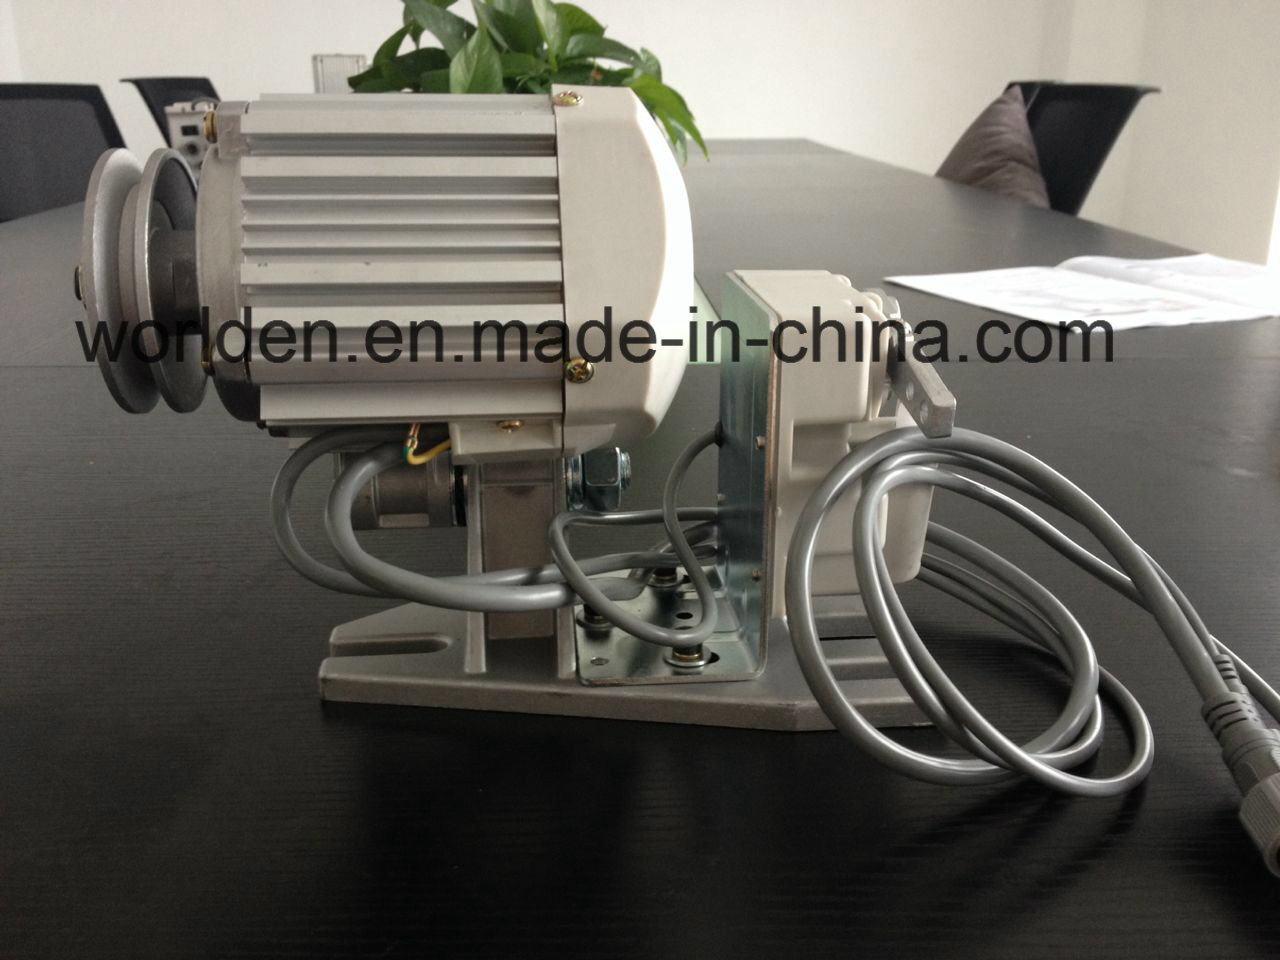 Wd-990jm Split Type Energy Saving Motor for Industrial Sewing Machine